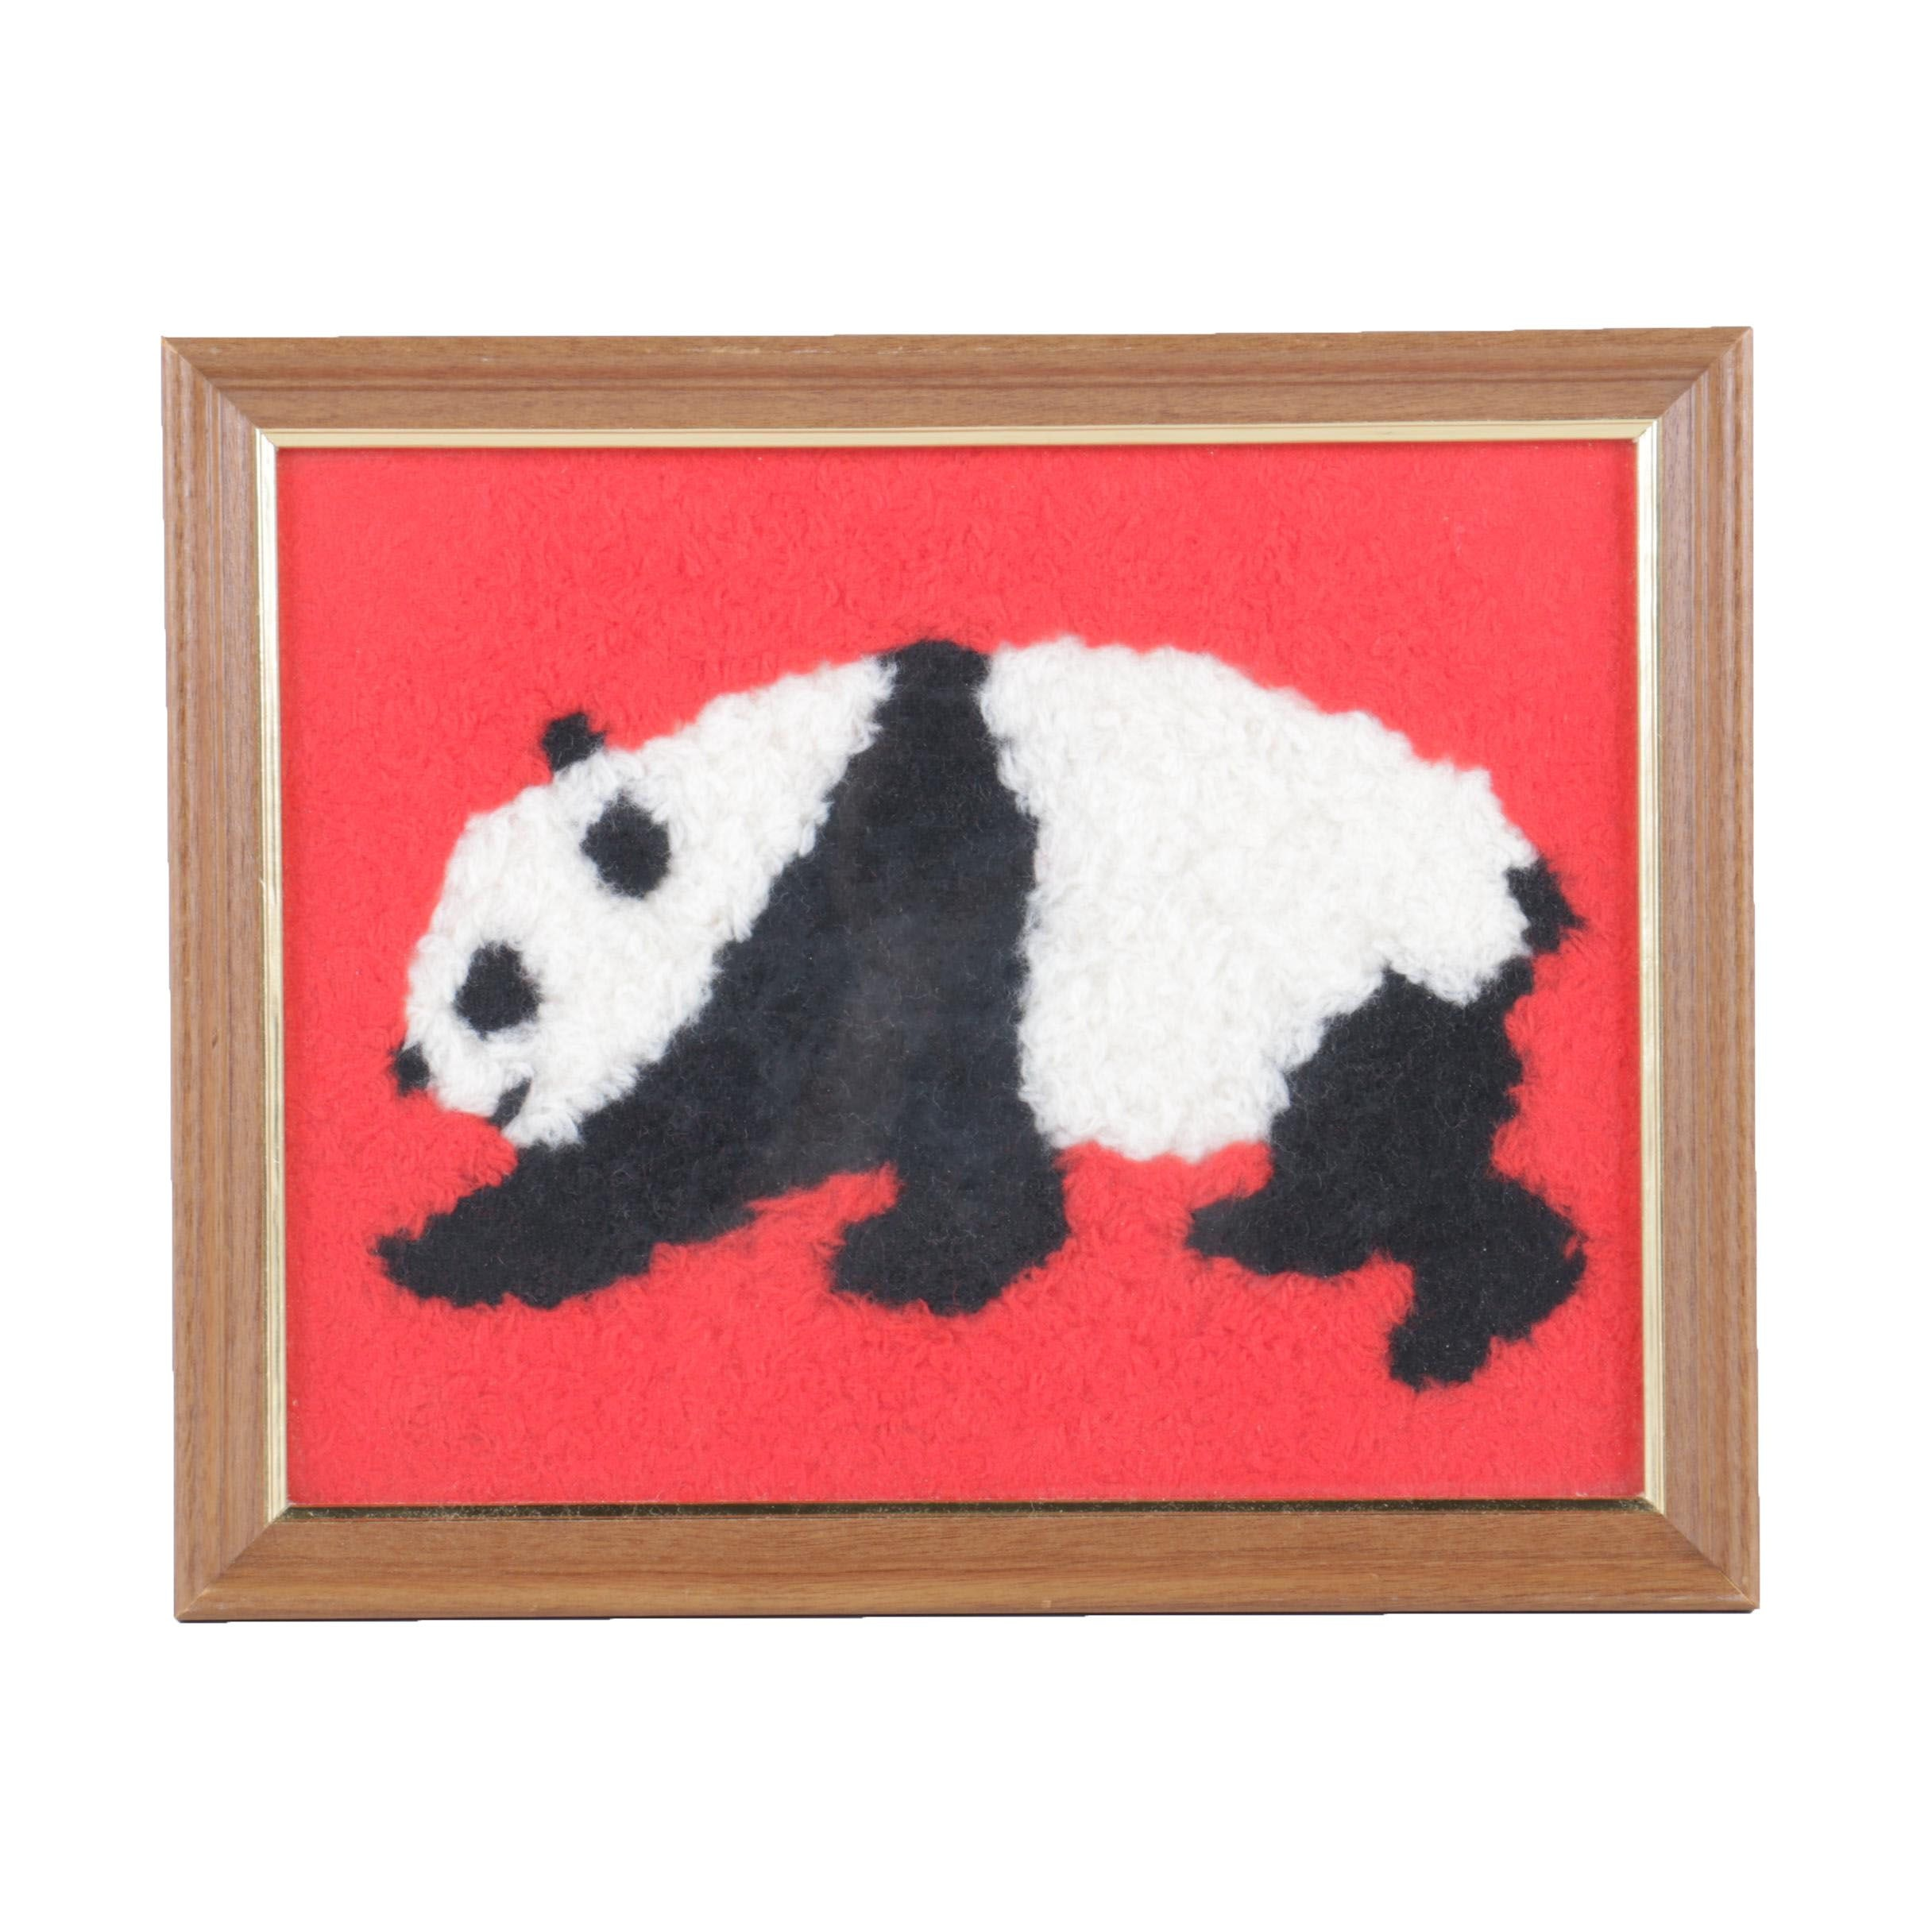 Pile Embroidery of a Panda